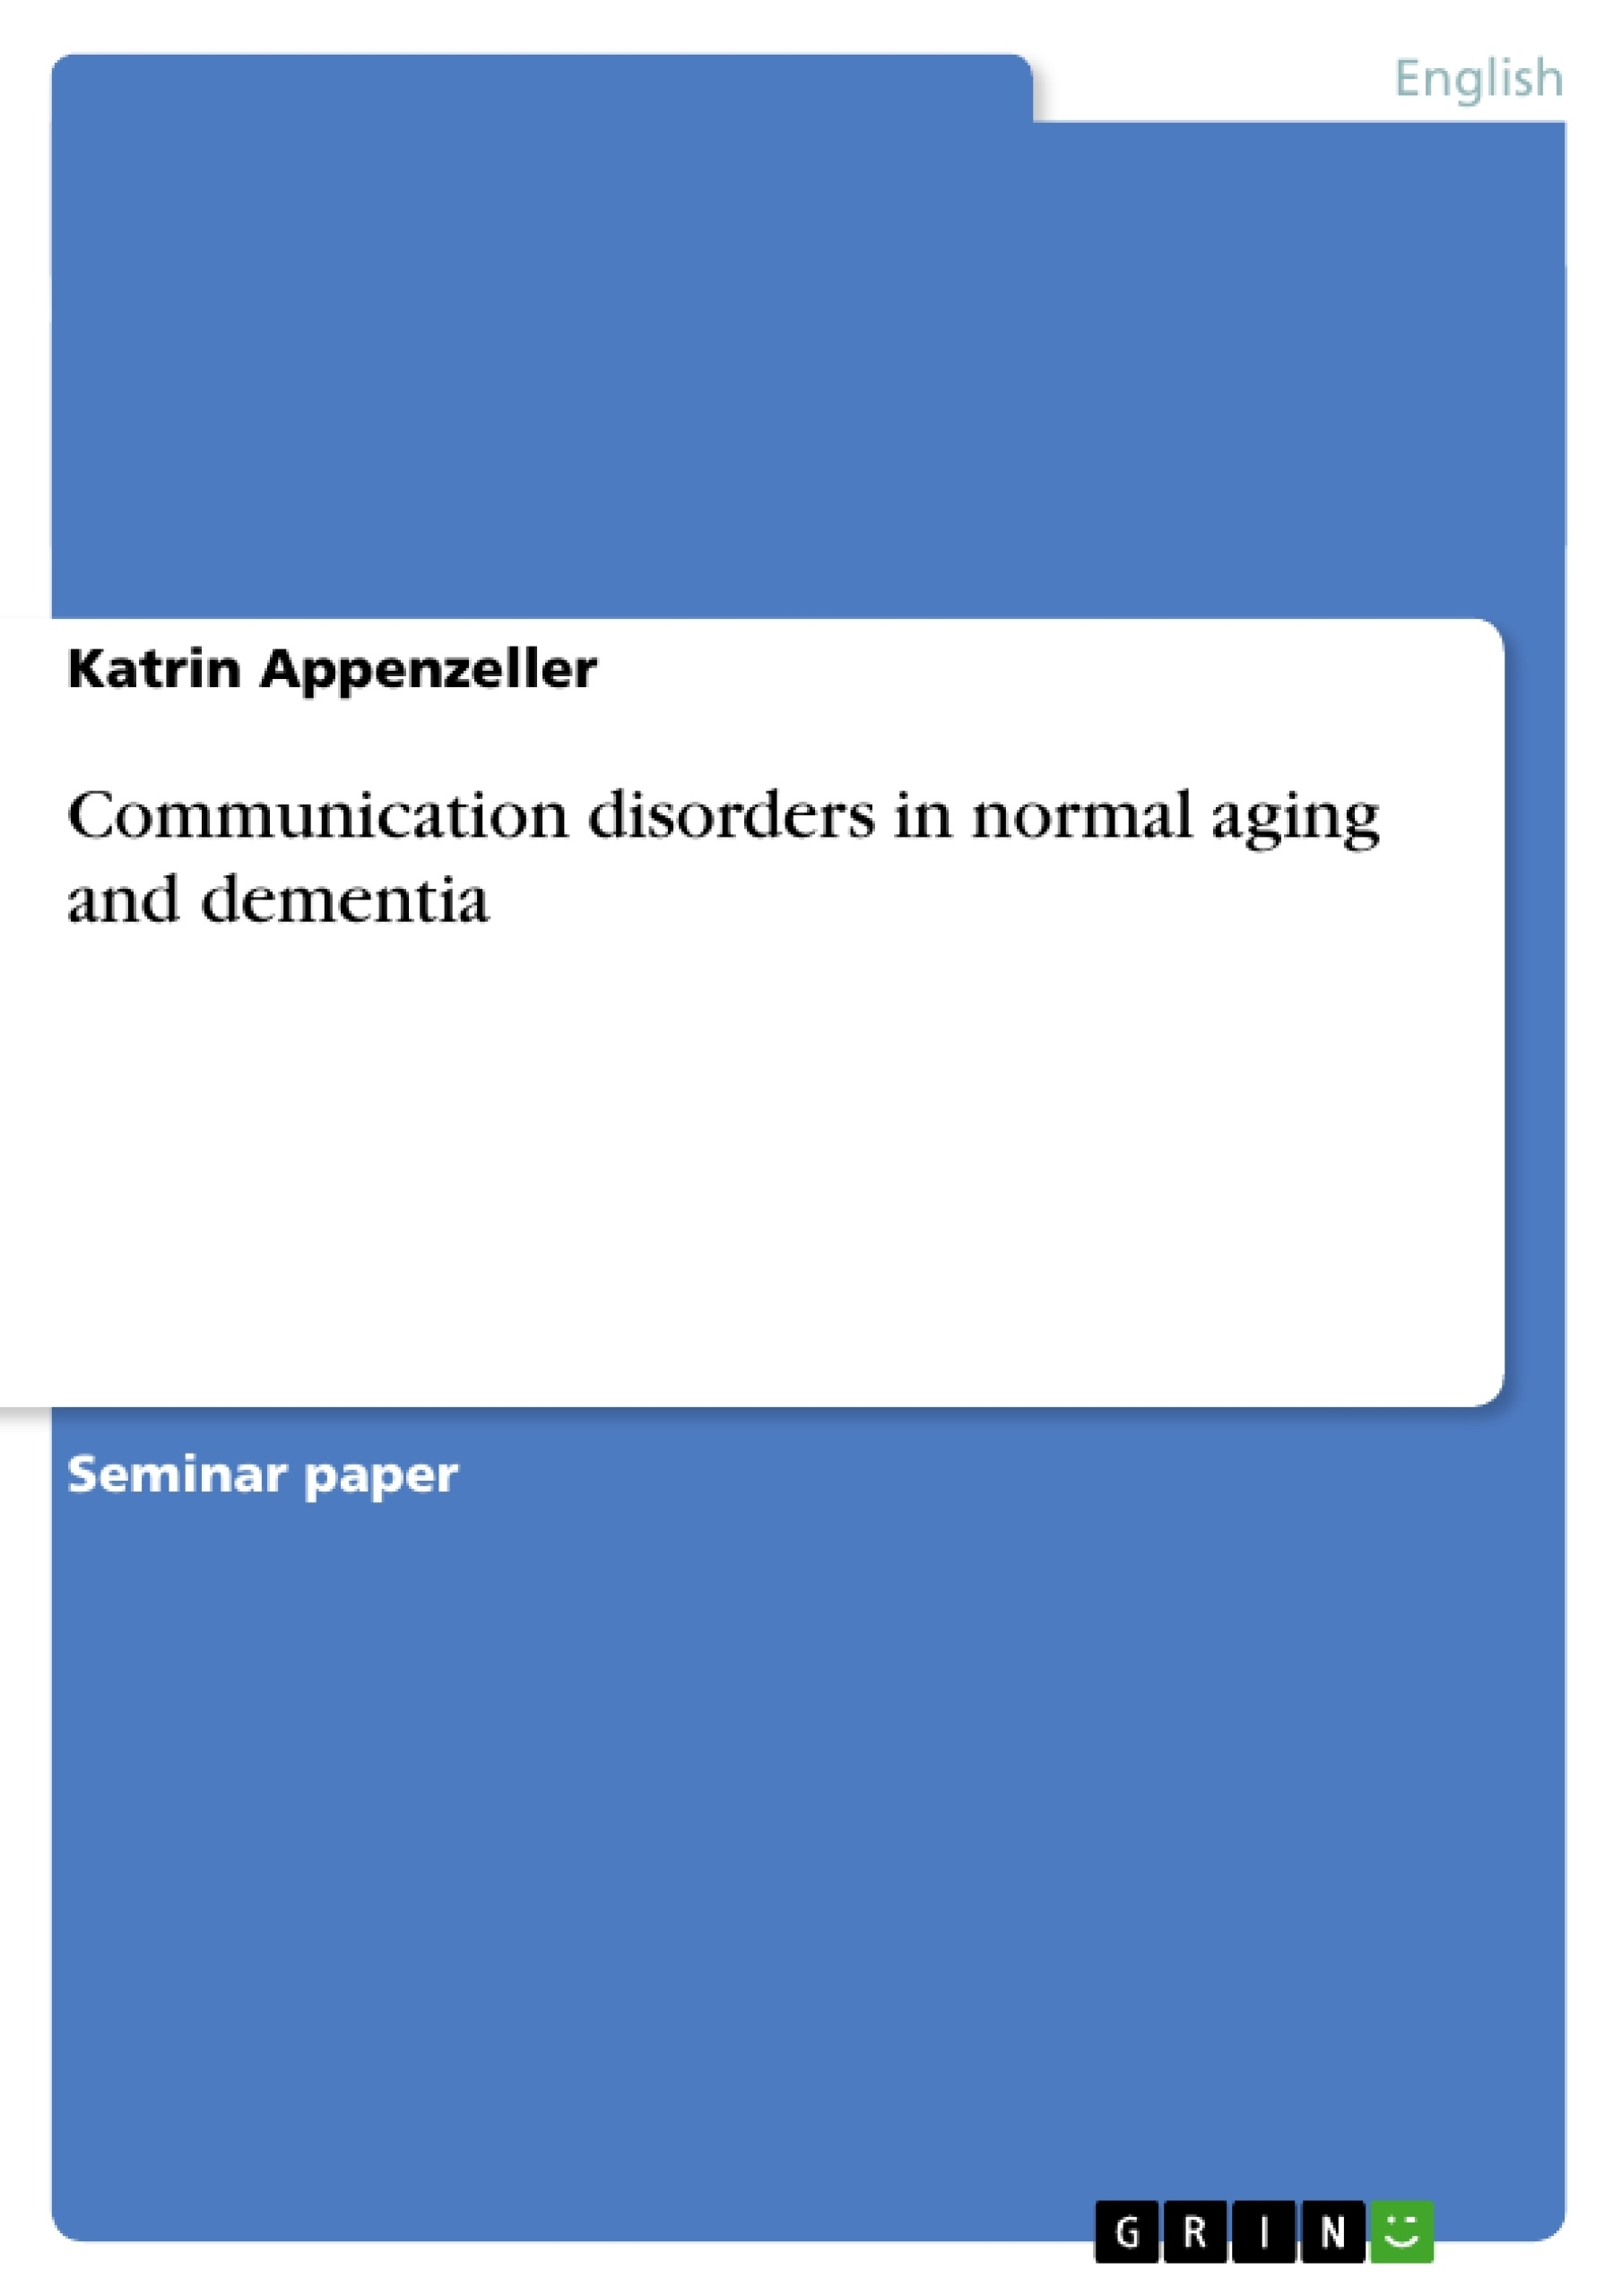 thesis on dementia